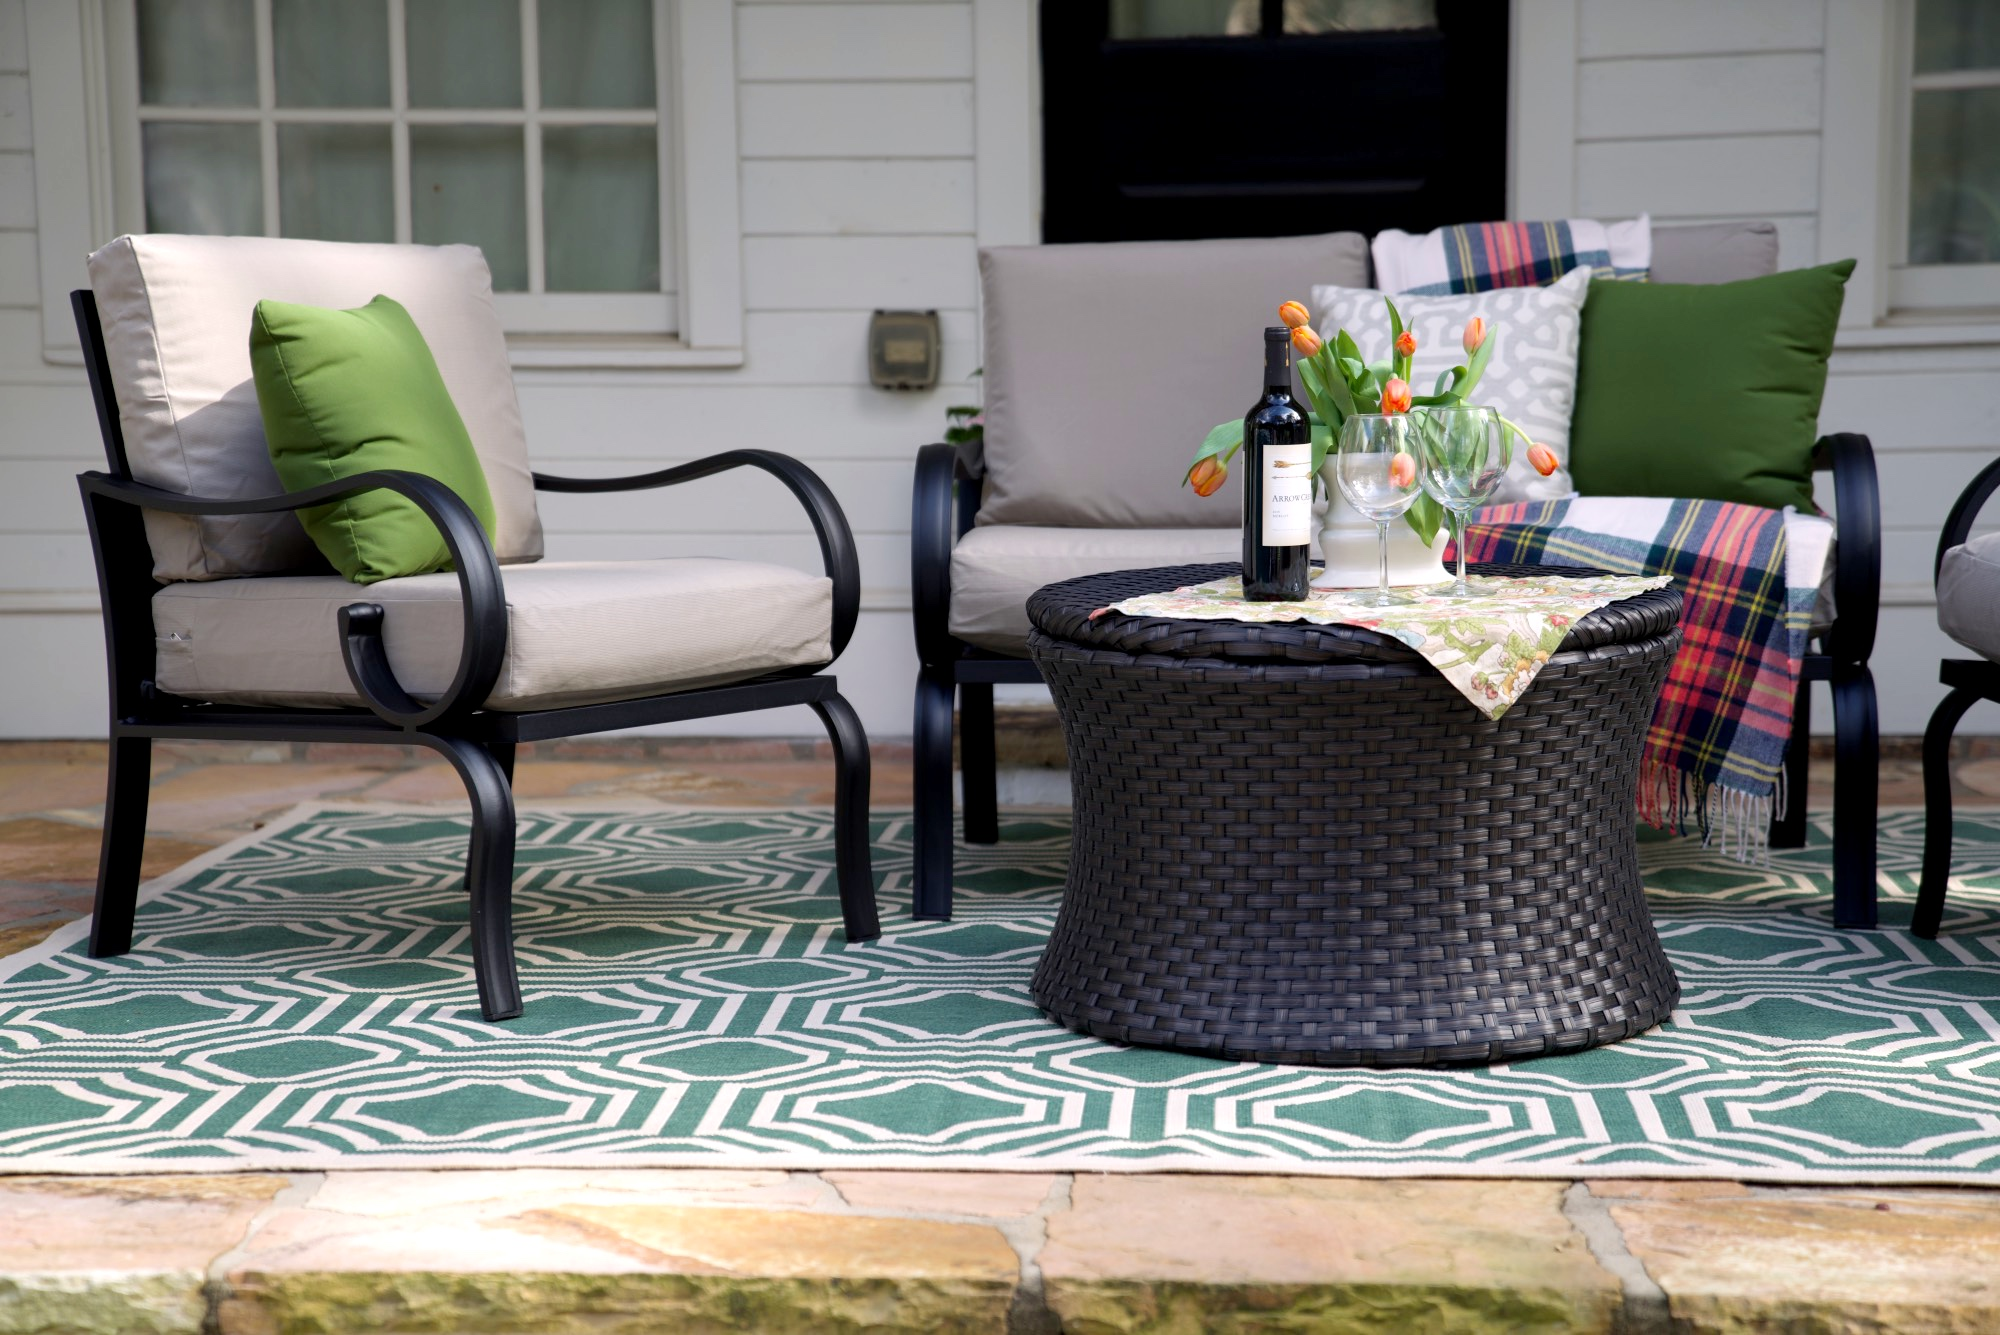 Savannah 4pc Outdoor Wicker Chat Set by SE Brands Inc.